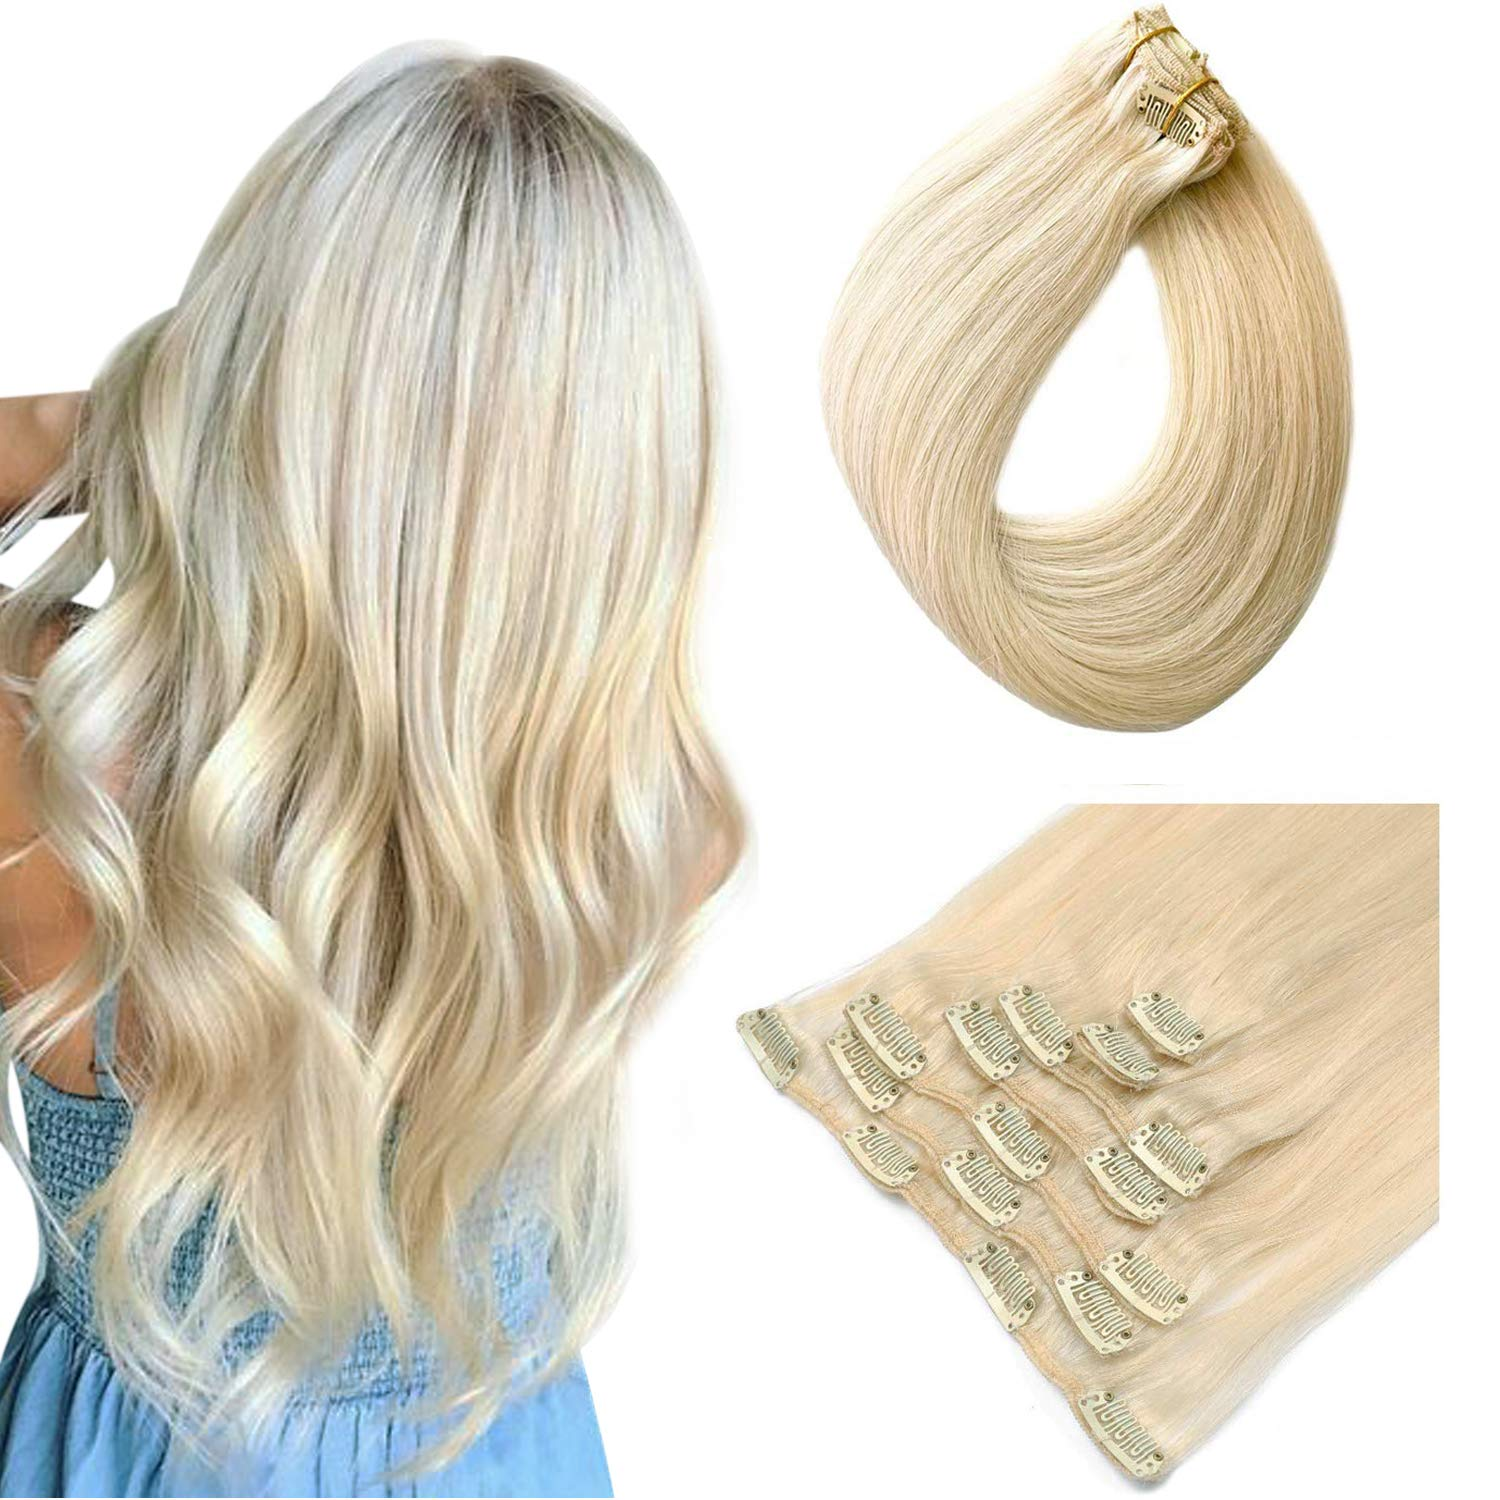 Blonde Clip in Real Human Hair Extensions Clip on Remy Hair Extensions for Women Double Weft Full Head Glueless Natural Soft Silky Straight #60 Platinum Blonde 70g 7pcs 16 Clips 20 Inch